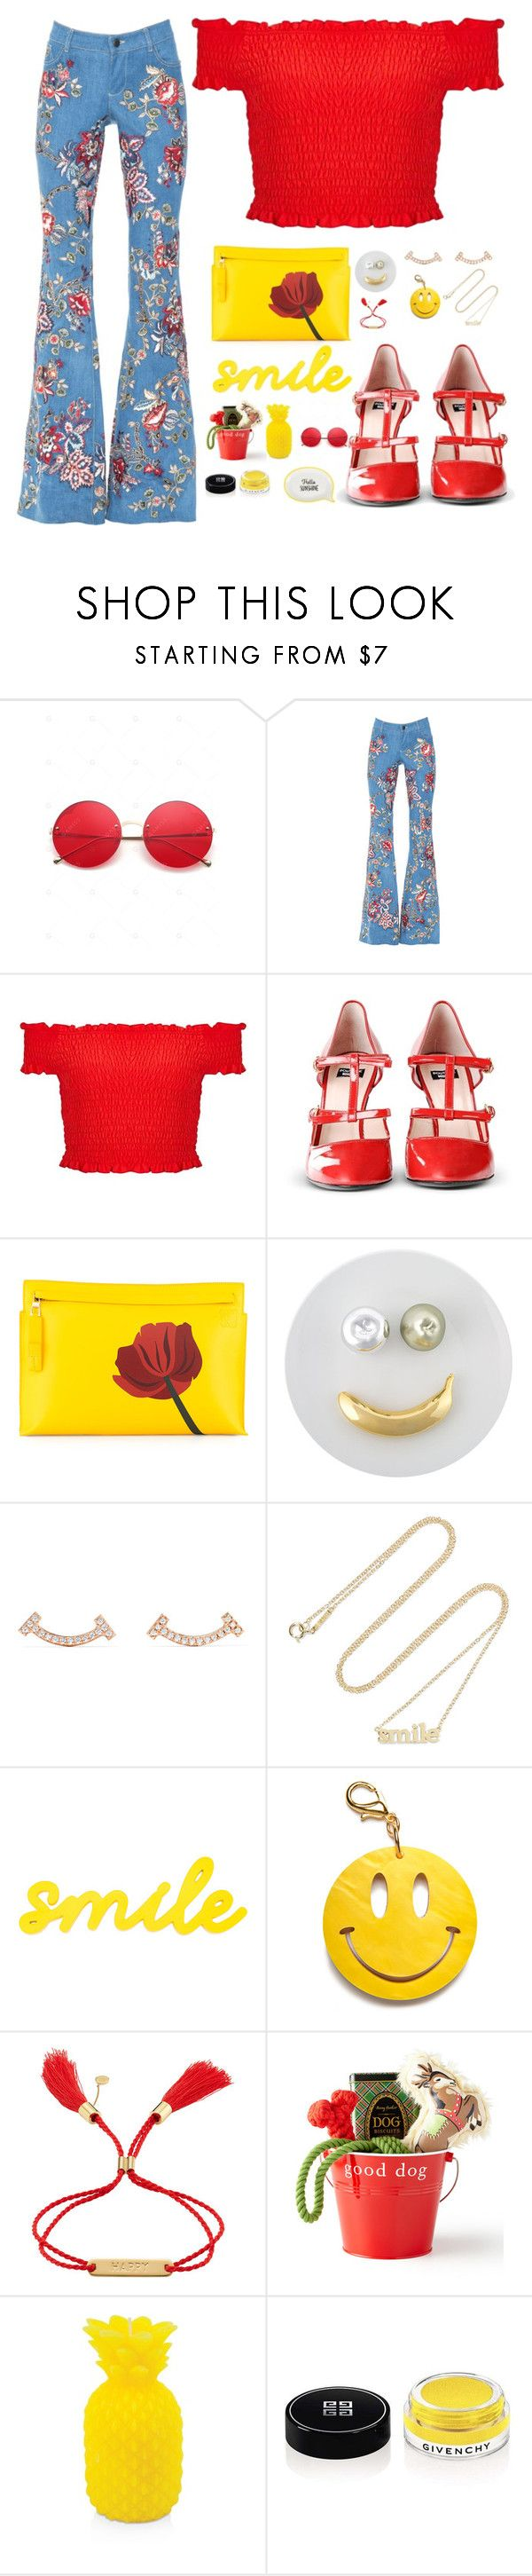 """""""Happy"""" by maria-canas ❤ liked on Polyvore featuring Miss Selfridge, Boutique Moschino, Loewe, Pols Potten, Jennifer Meyer Jewelry, Edie Parker, Chloé, Harry Barker, Sunnylife and Givenchy"""